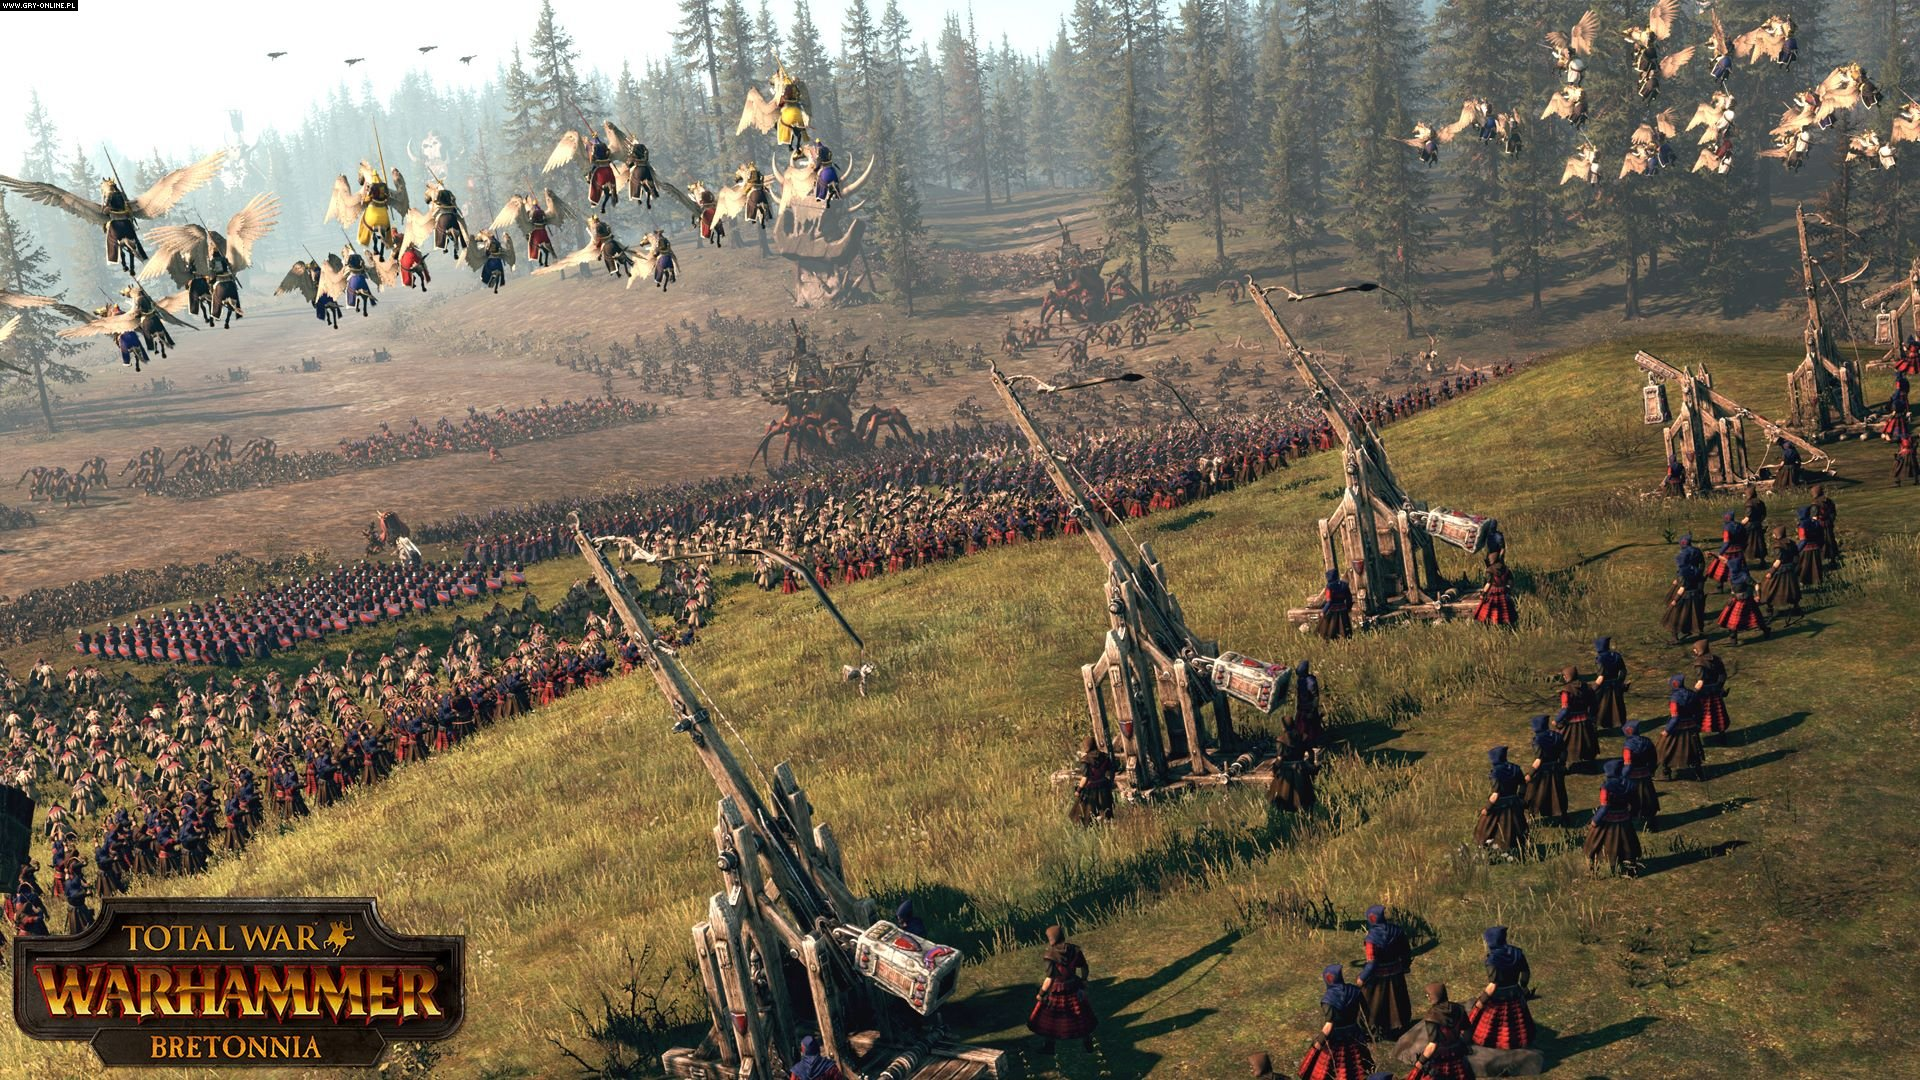 Total War: Warhammer PC Gry Screen 5/106, Creative Assembly, SEGA